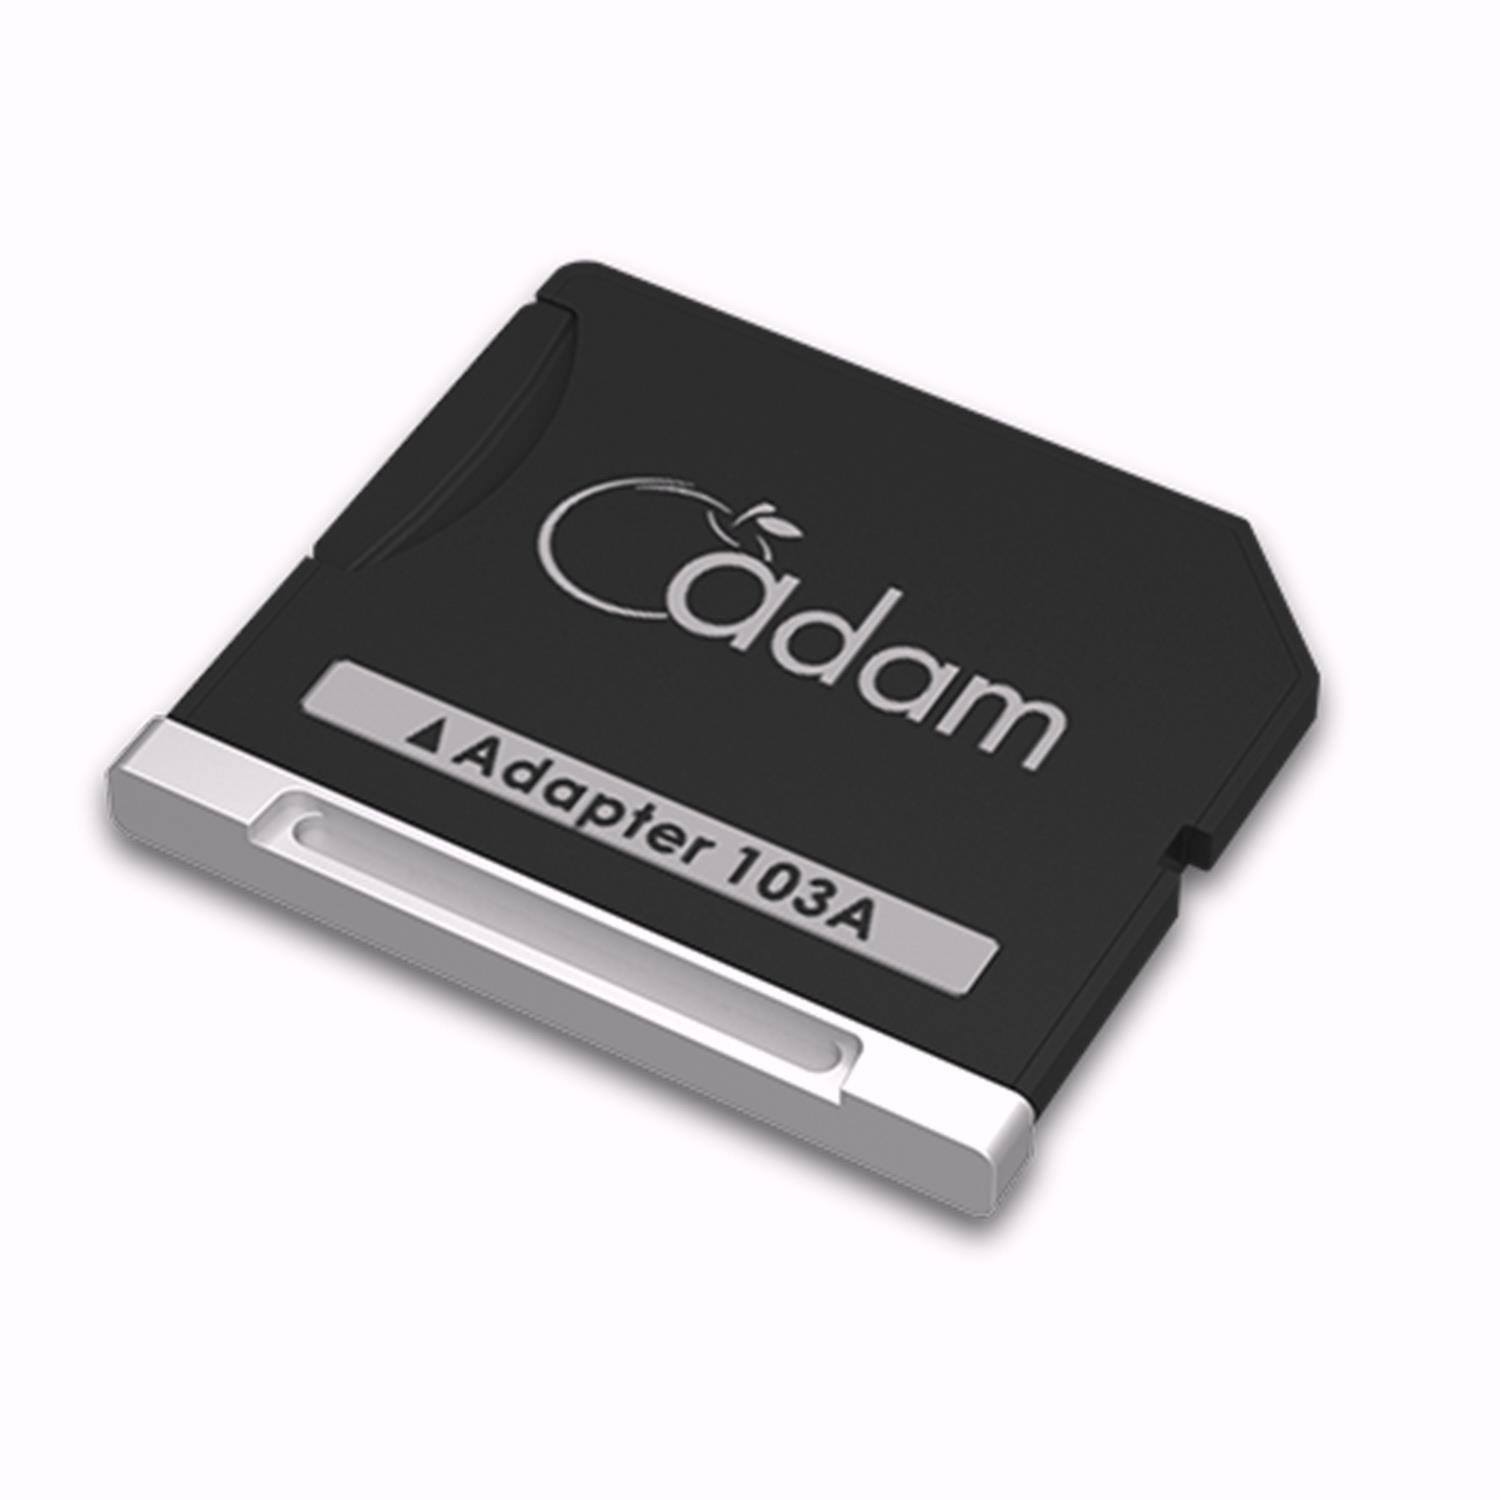 """Adam hub card adapter Elements ultra fit Drive SDHC for Micro SD Adapter sd Reader for Macbook Air 13""""Sliver HK309(China (Mainland))"""